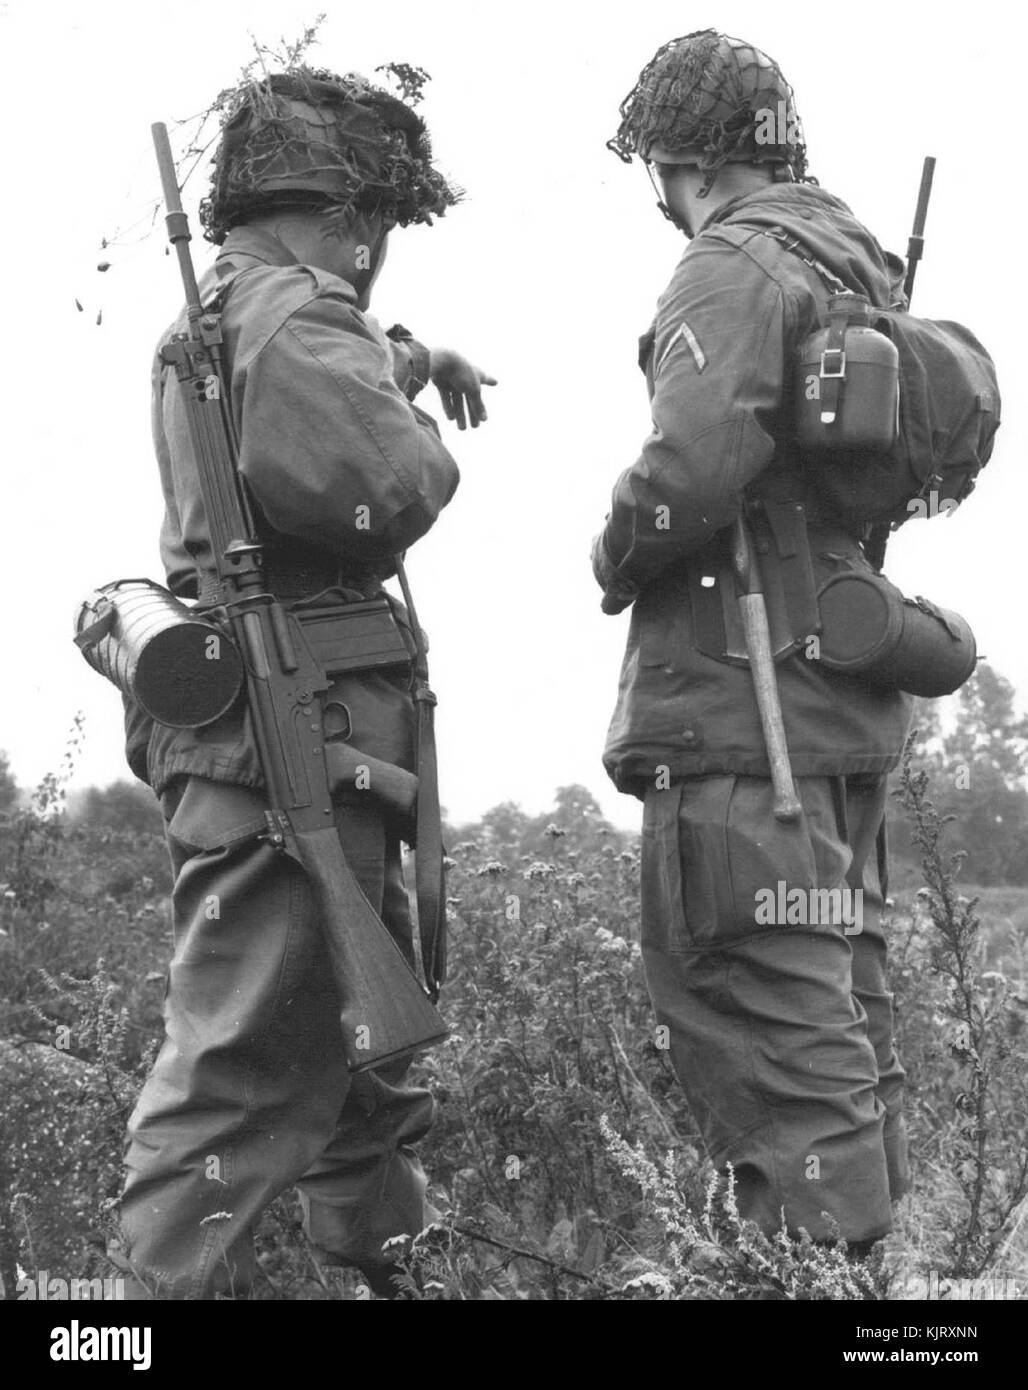 Two German soldiers on a joint exercise in 1960. West Germany used the FN FAL designated as G1. - Stock Image